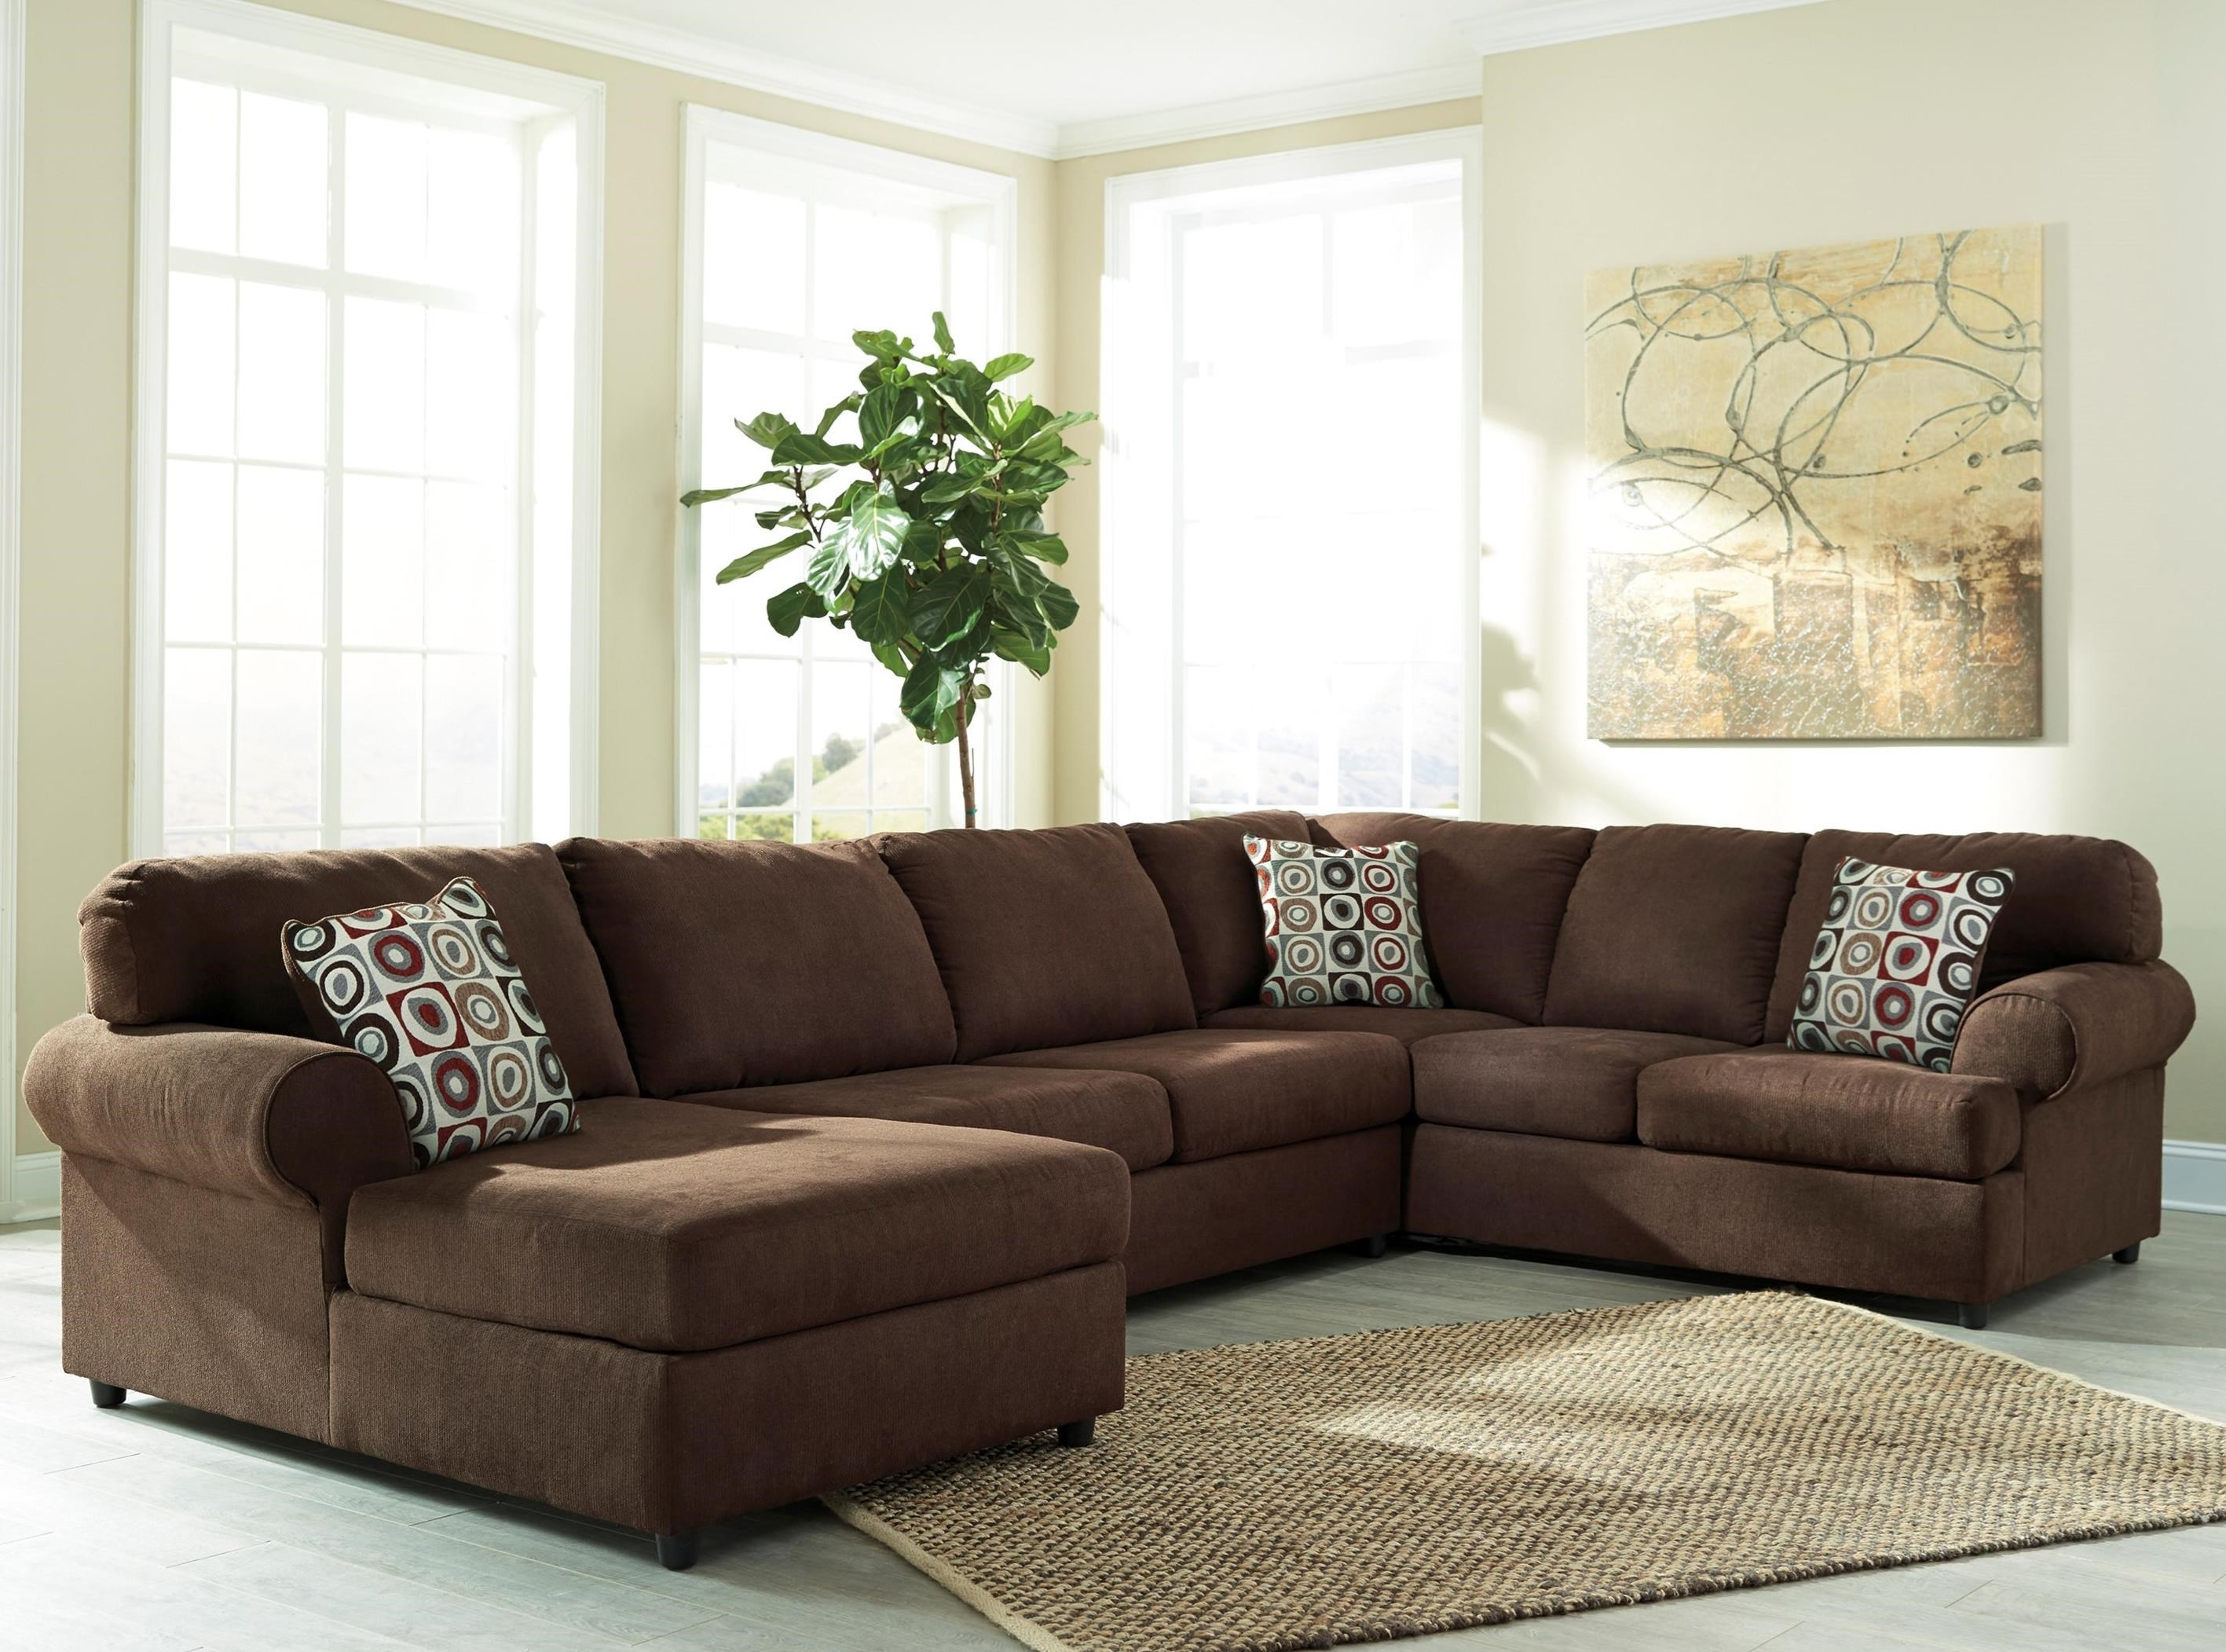 Signature design by ashley jayceon 3 piece sectional with for Ashley large sectional sofa